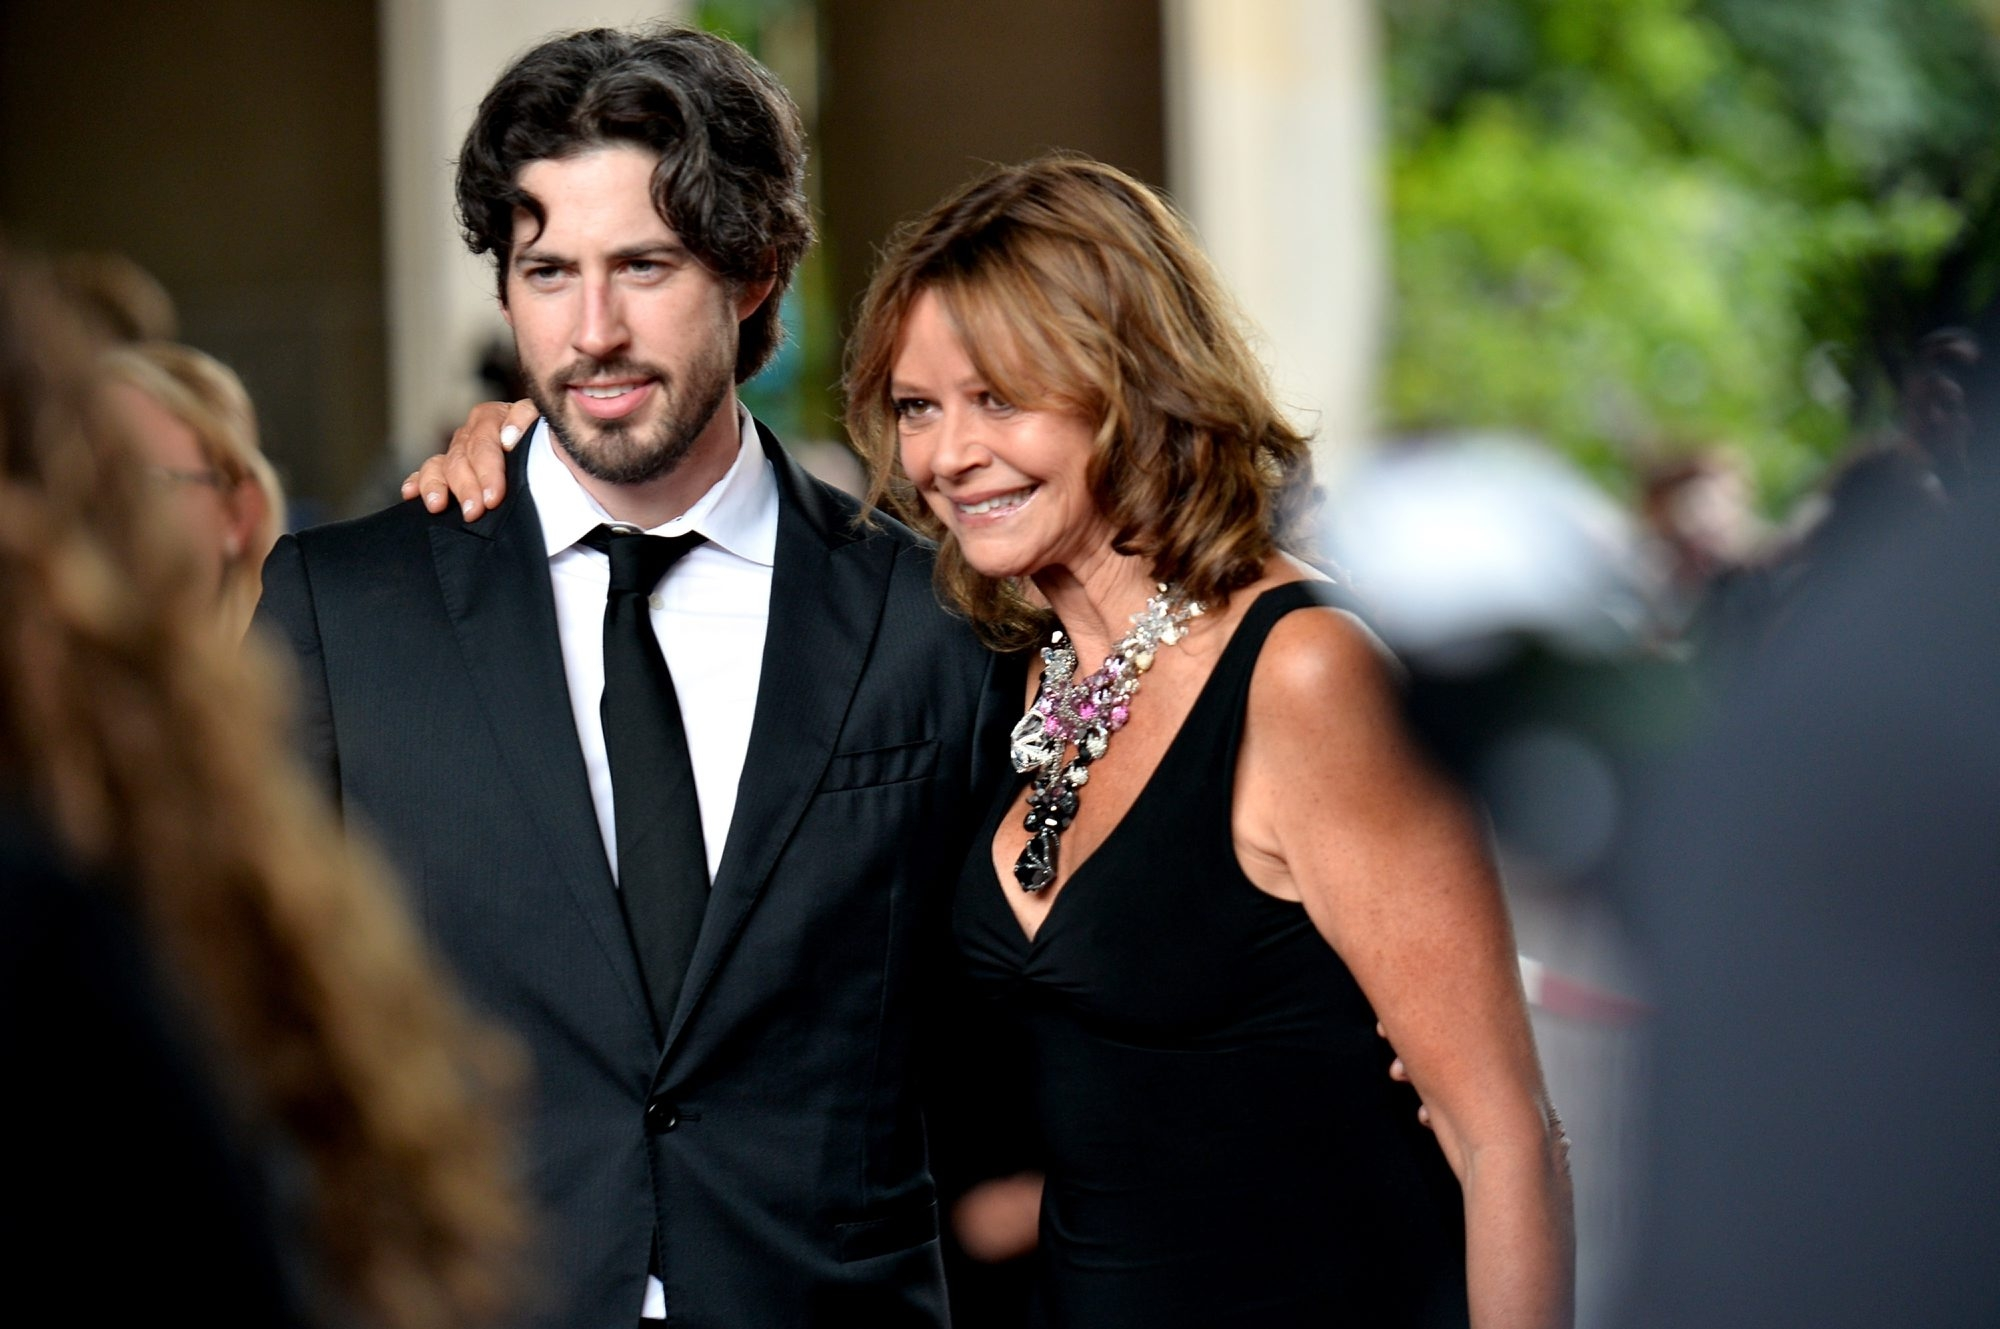 """Joyce Maynard and Jason Reitman attend the premiere of """"Labor Day,"""" the movie he directed based on her book, at the 2013 Toronto International Film Festival."""